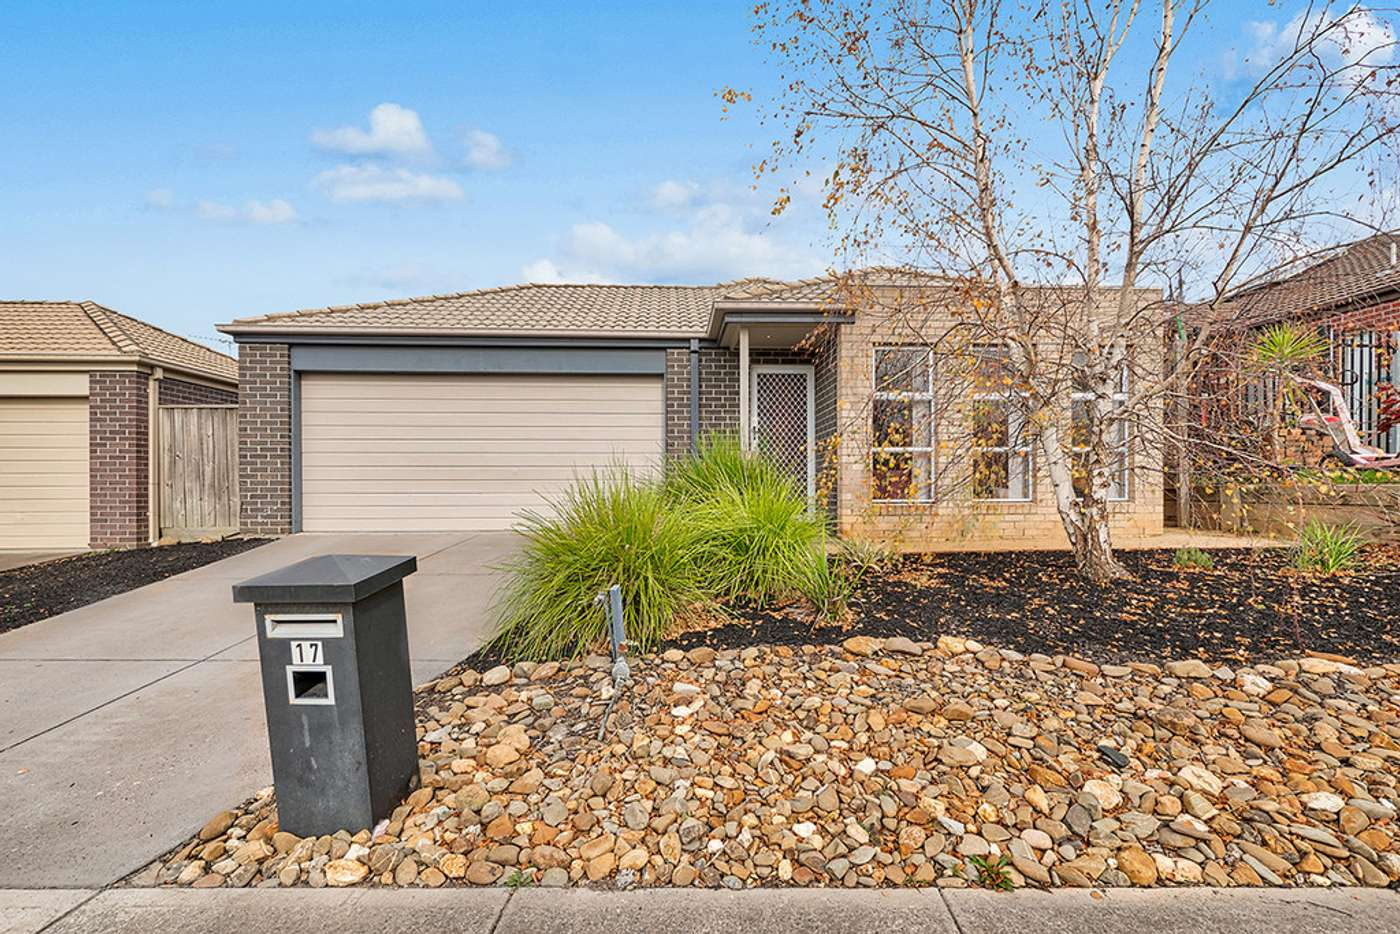 Main view of Homely house listing, 17 Tetrabine Way, Lyndhurst VIC 3975